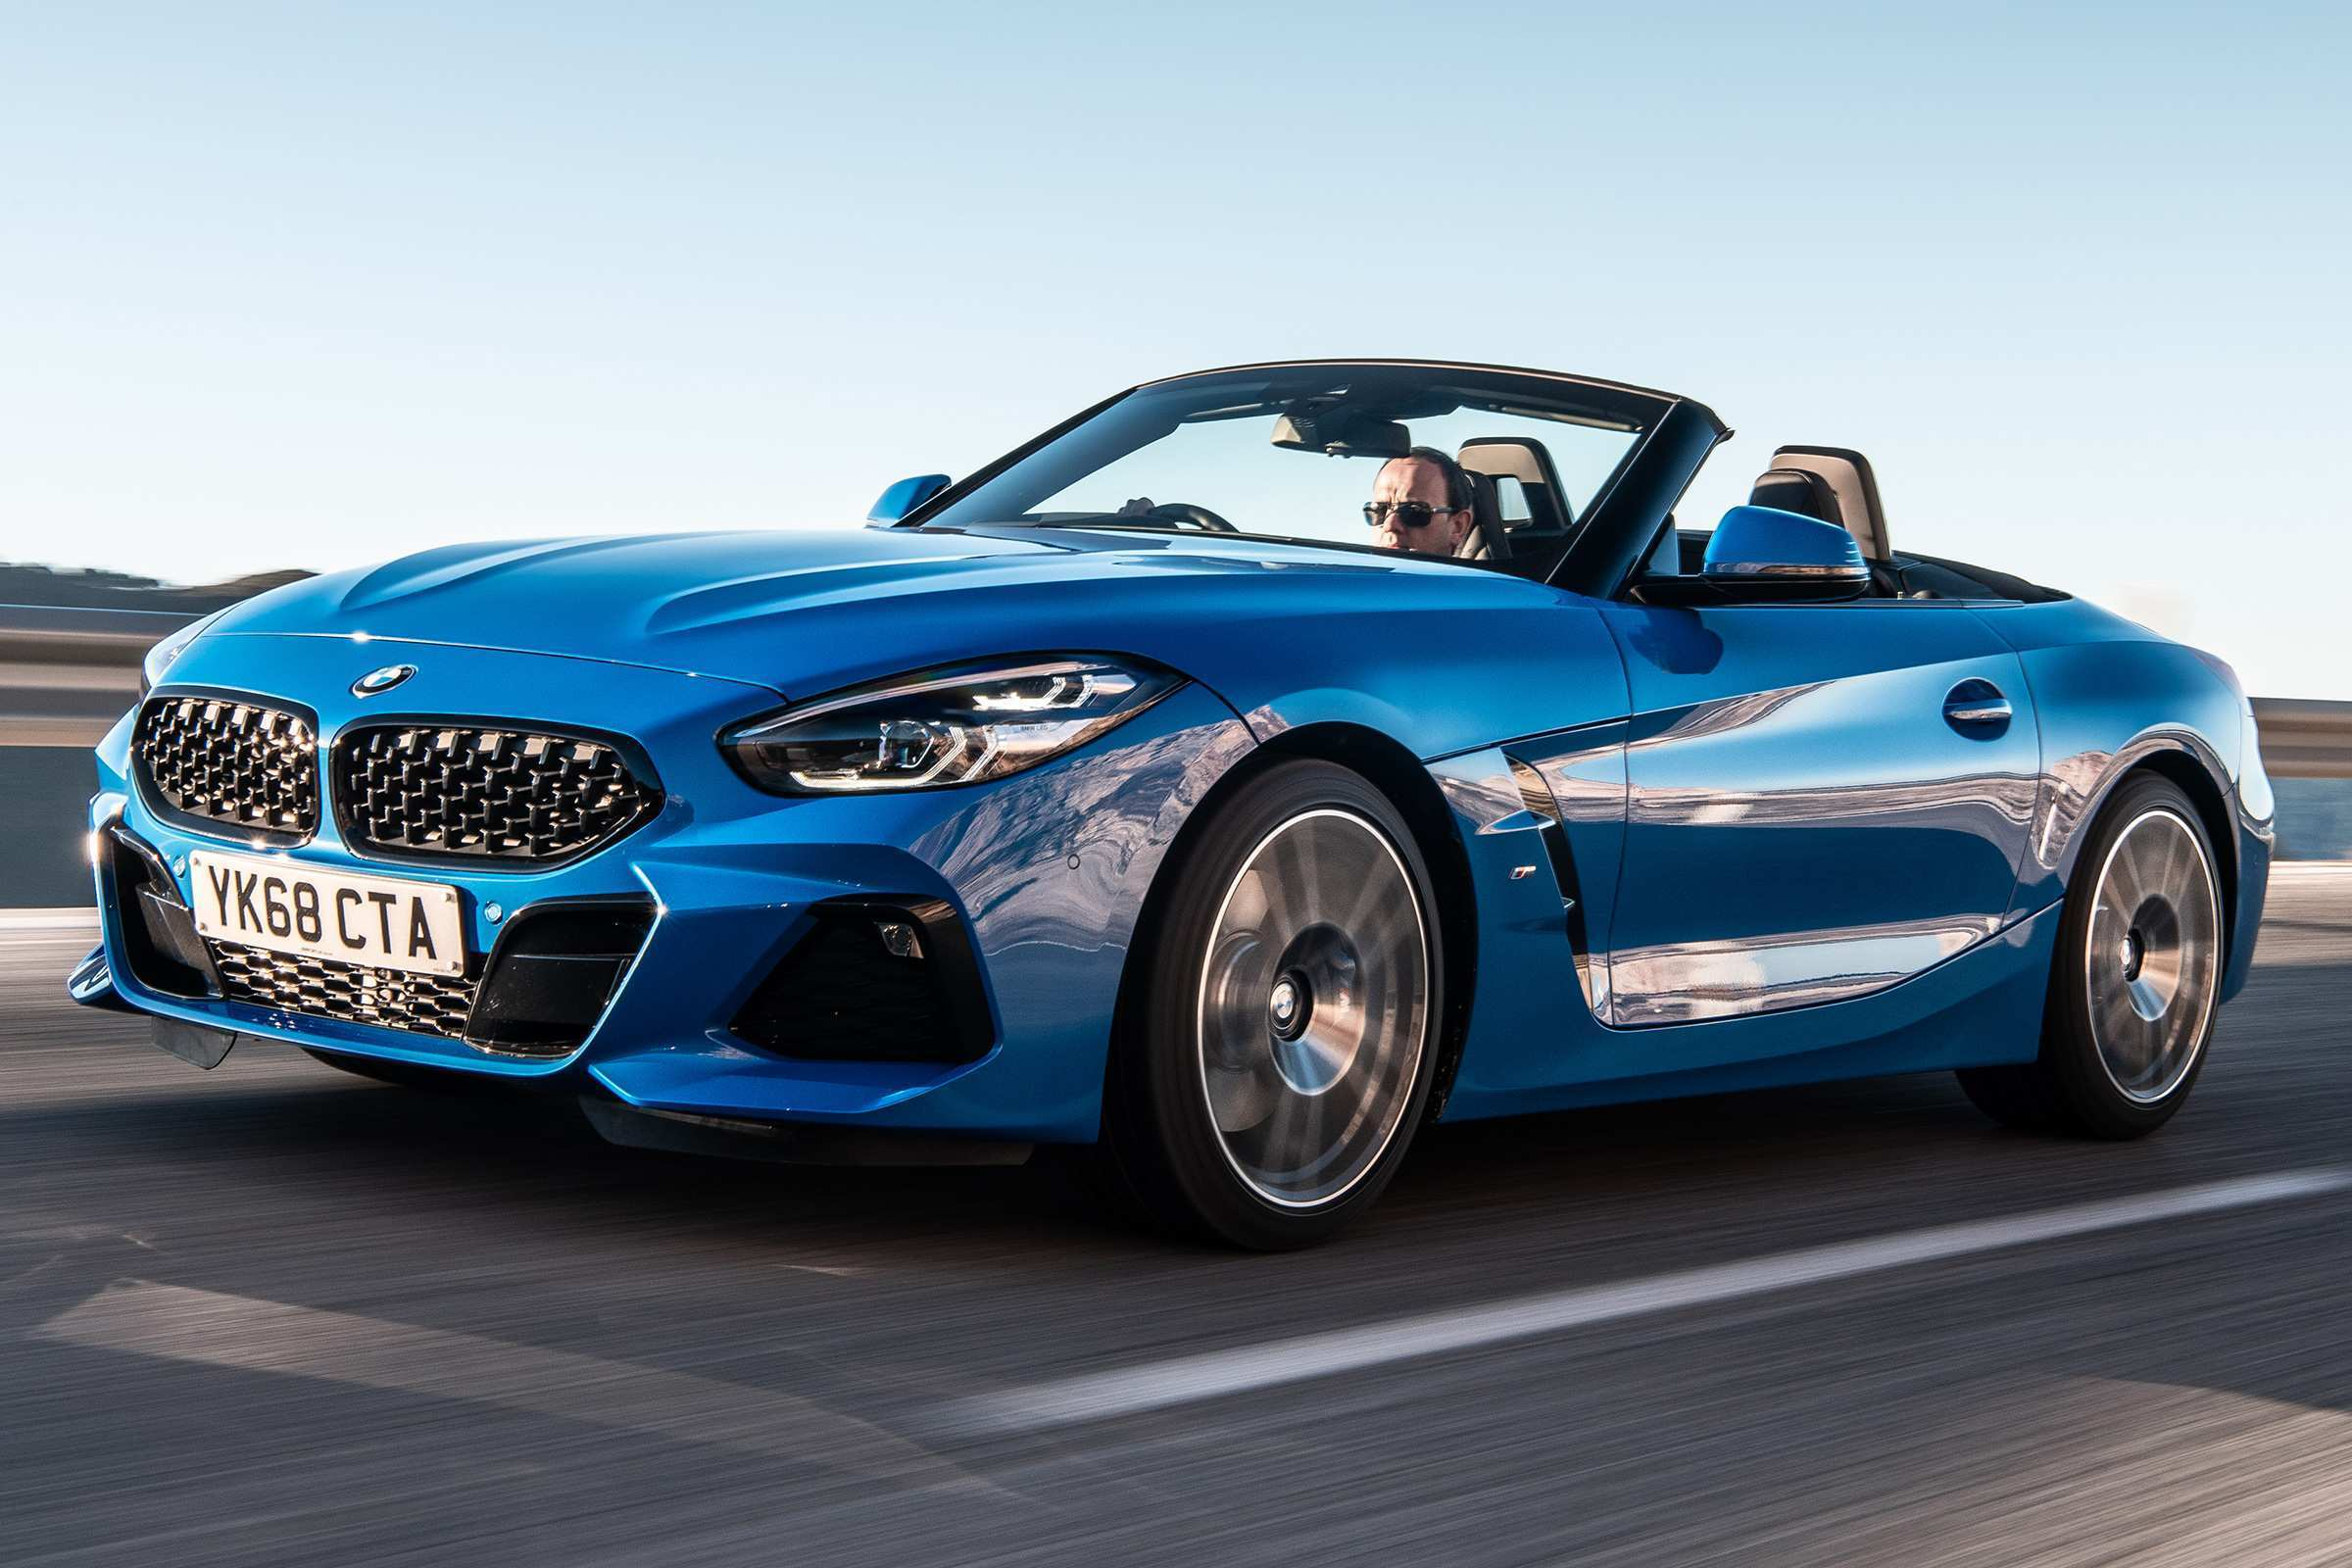 88 The The Bmw 2019 Z4 Dimensions Specs And Review Review for The Bmw 2019 Z4 Dimensions Specs And Review